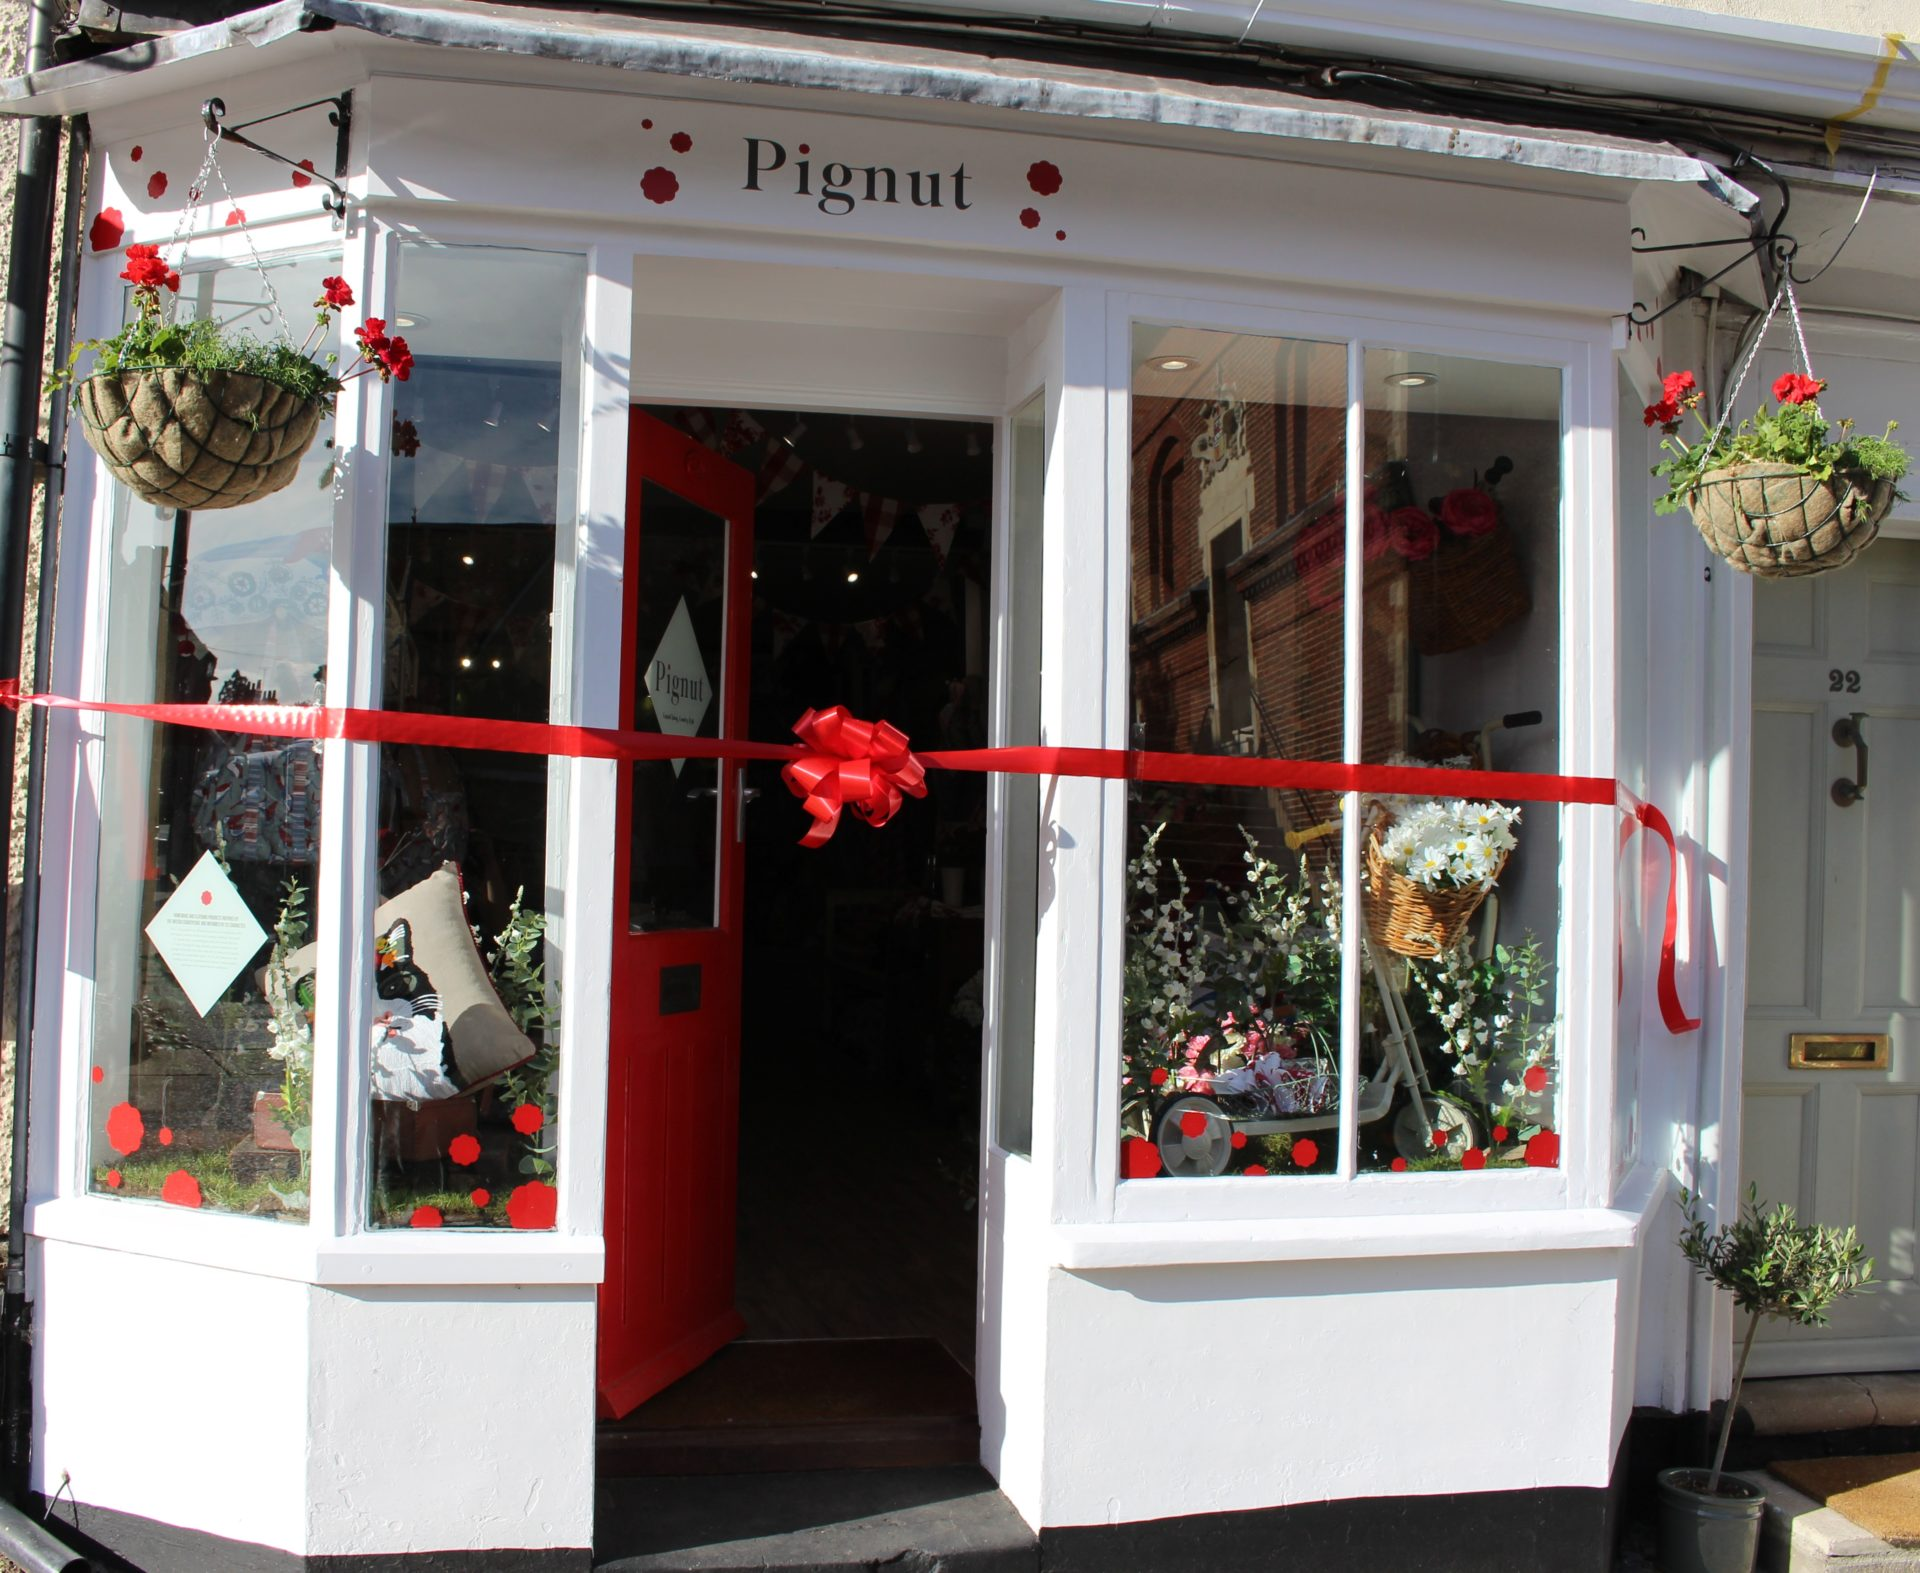 New interior store, Pignut, opens in Woodbridge